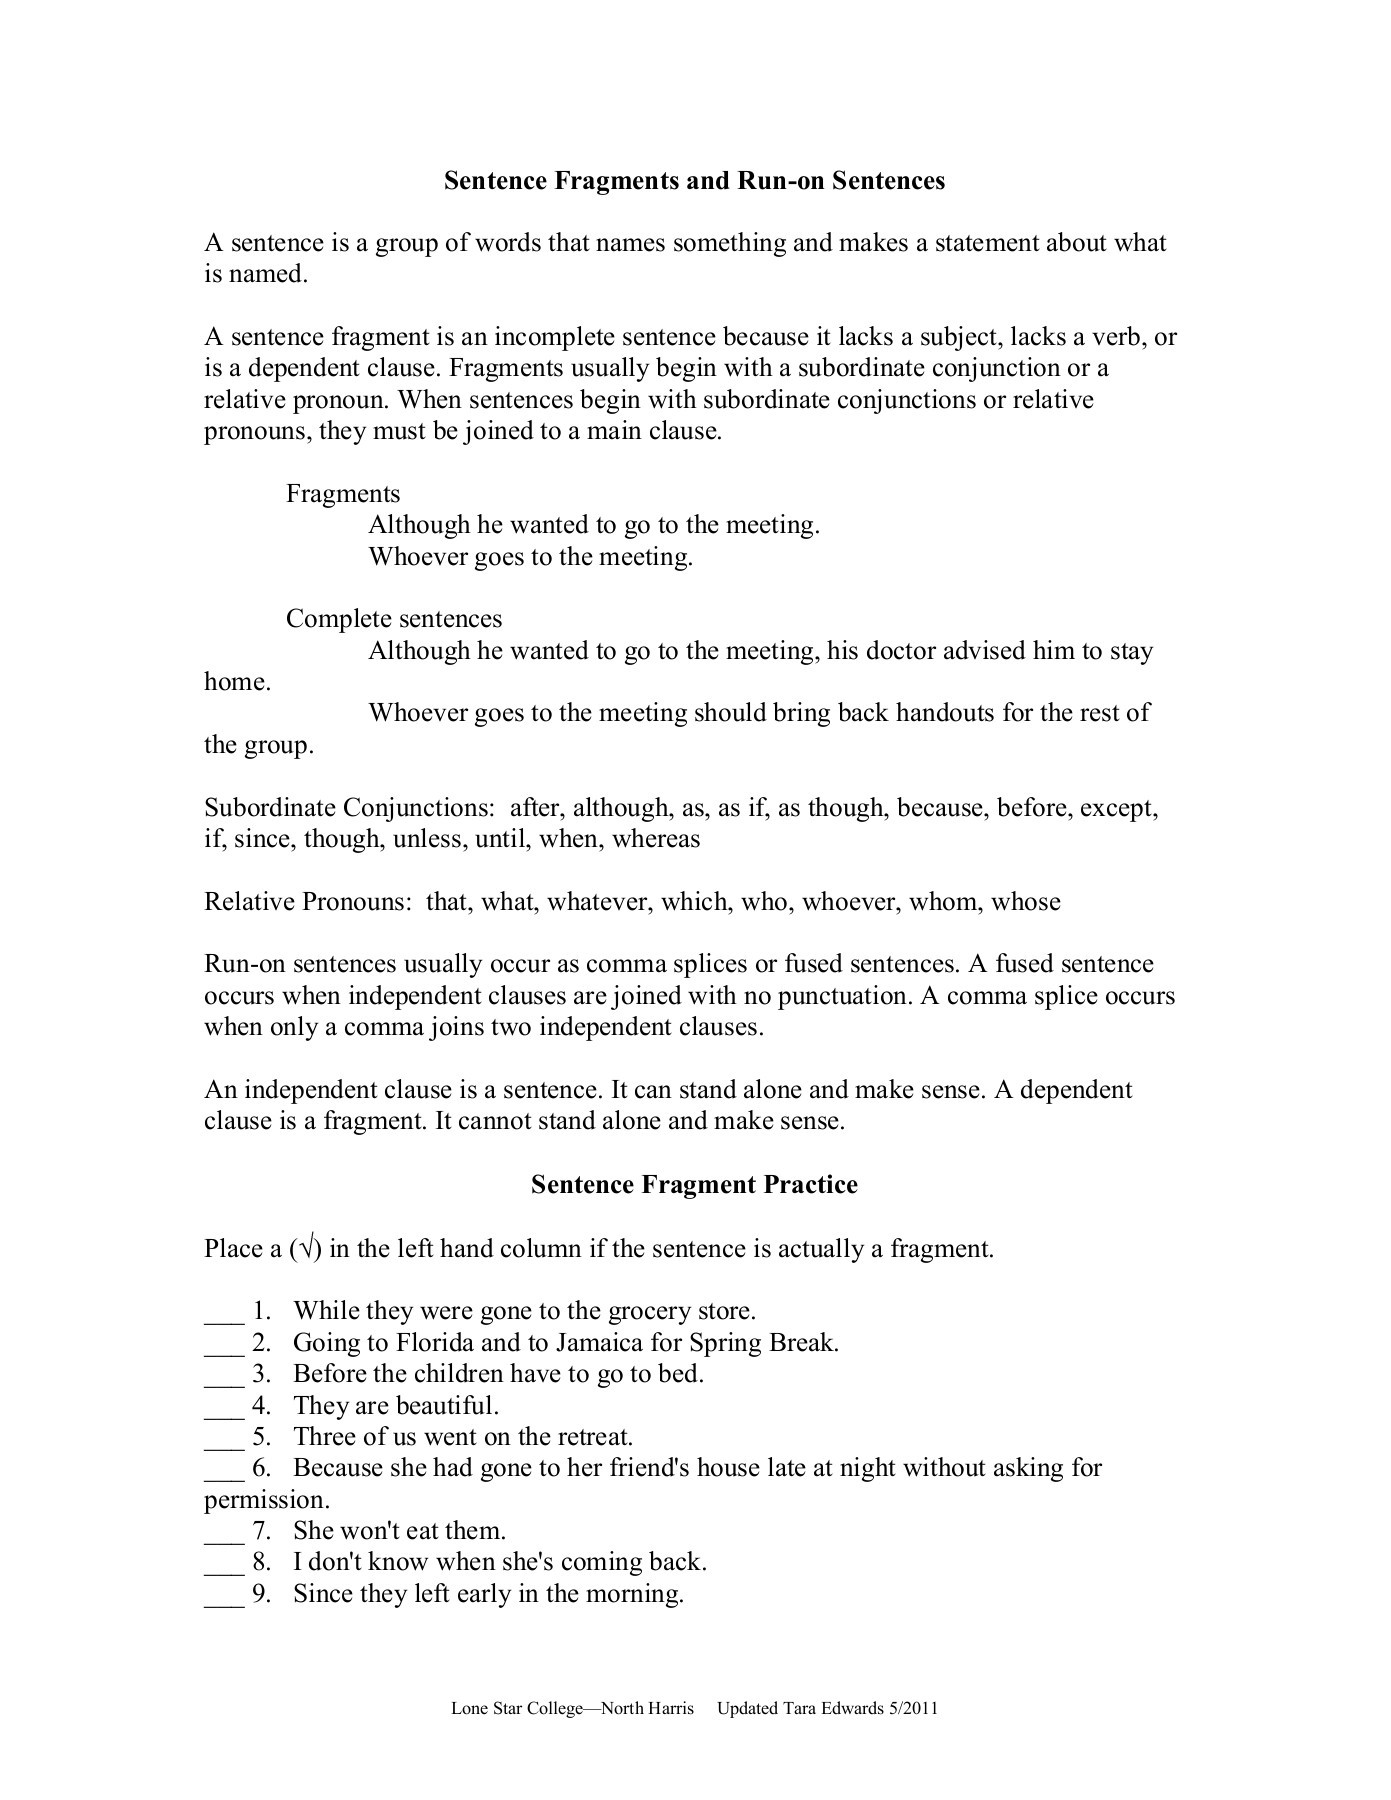 Sentence Fragments And Run Ons Worksheet